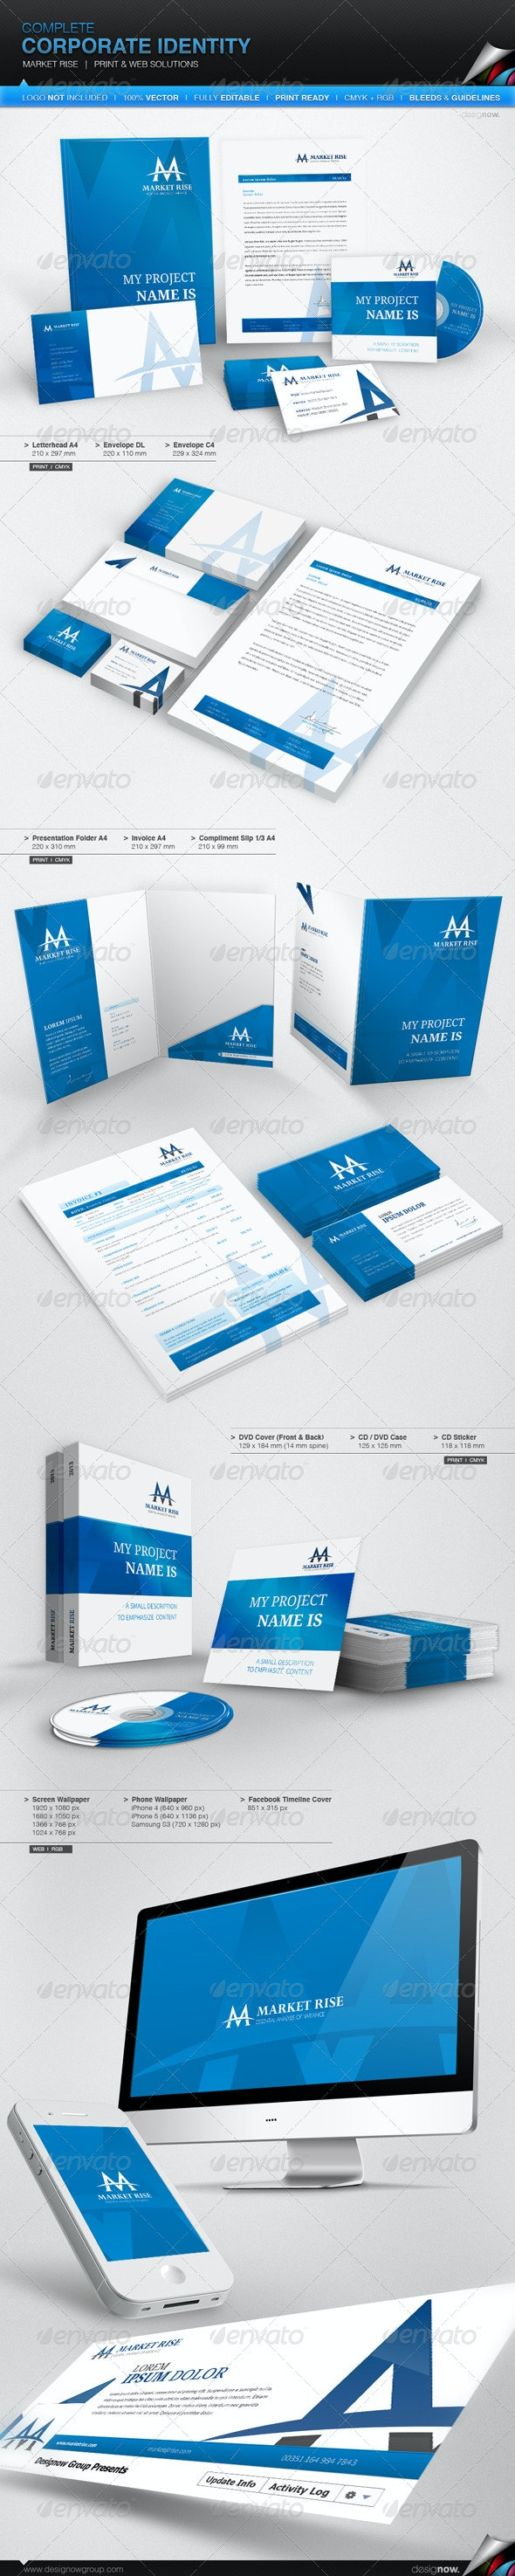 Corporate Identity - Market Rise - Stationery Print Templates